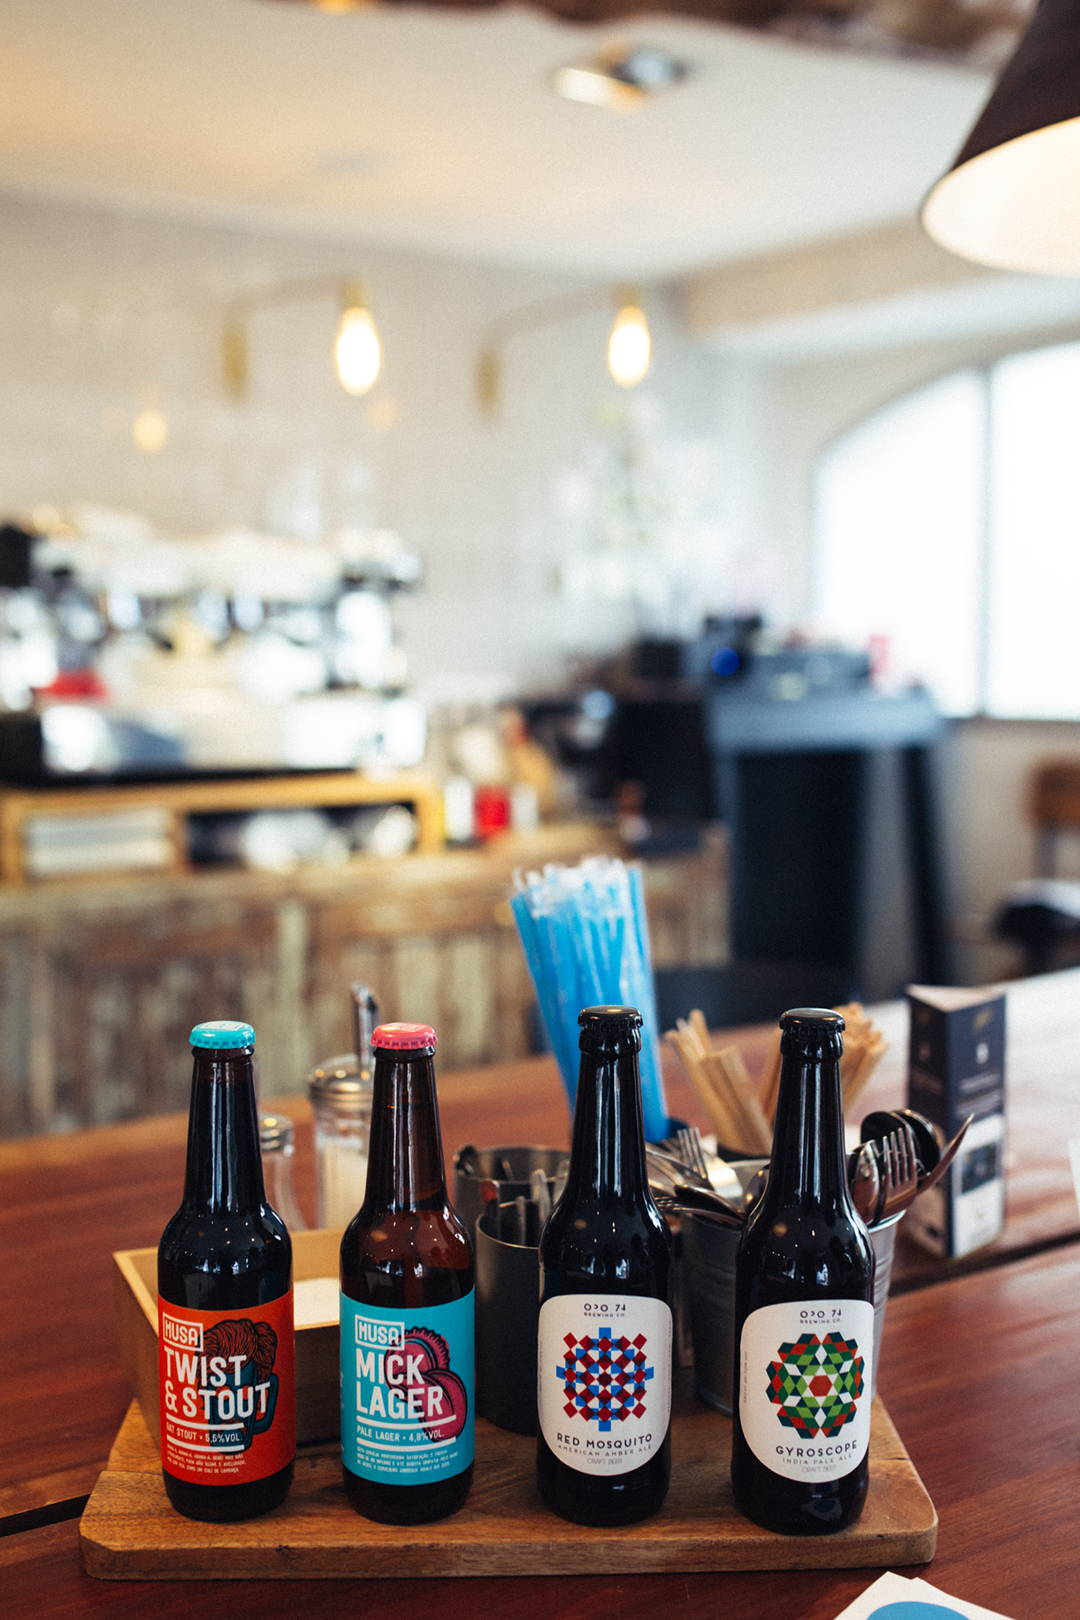 Craft beer is also served at SO Coffee Roasters café in Porto and Lisbon